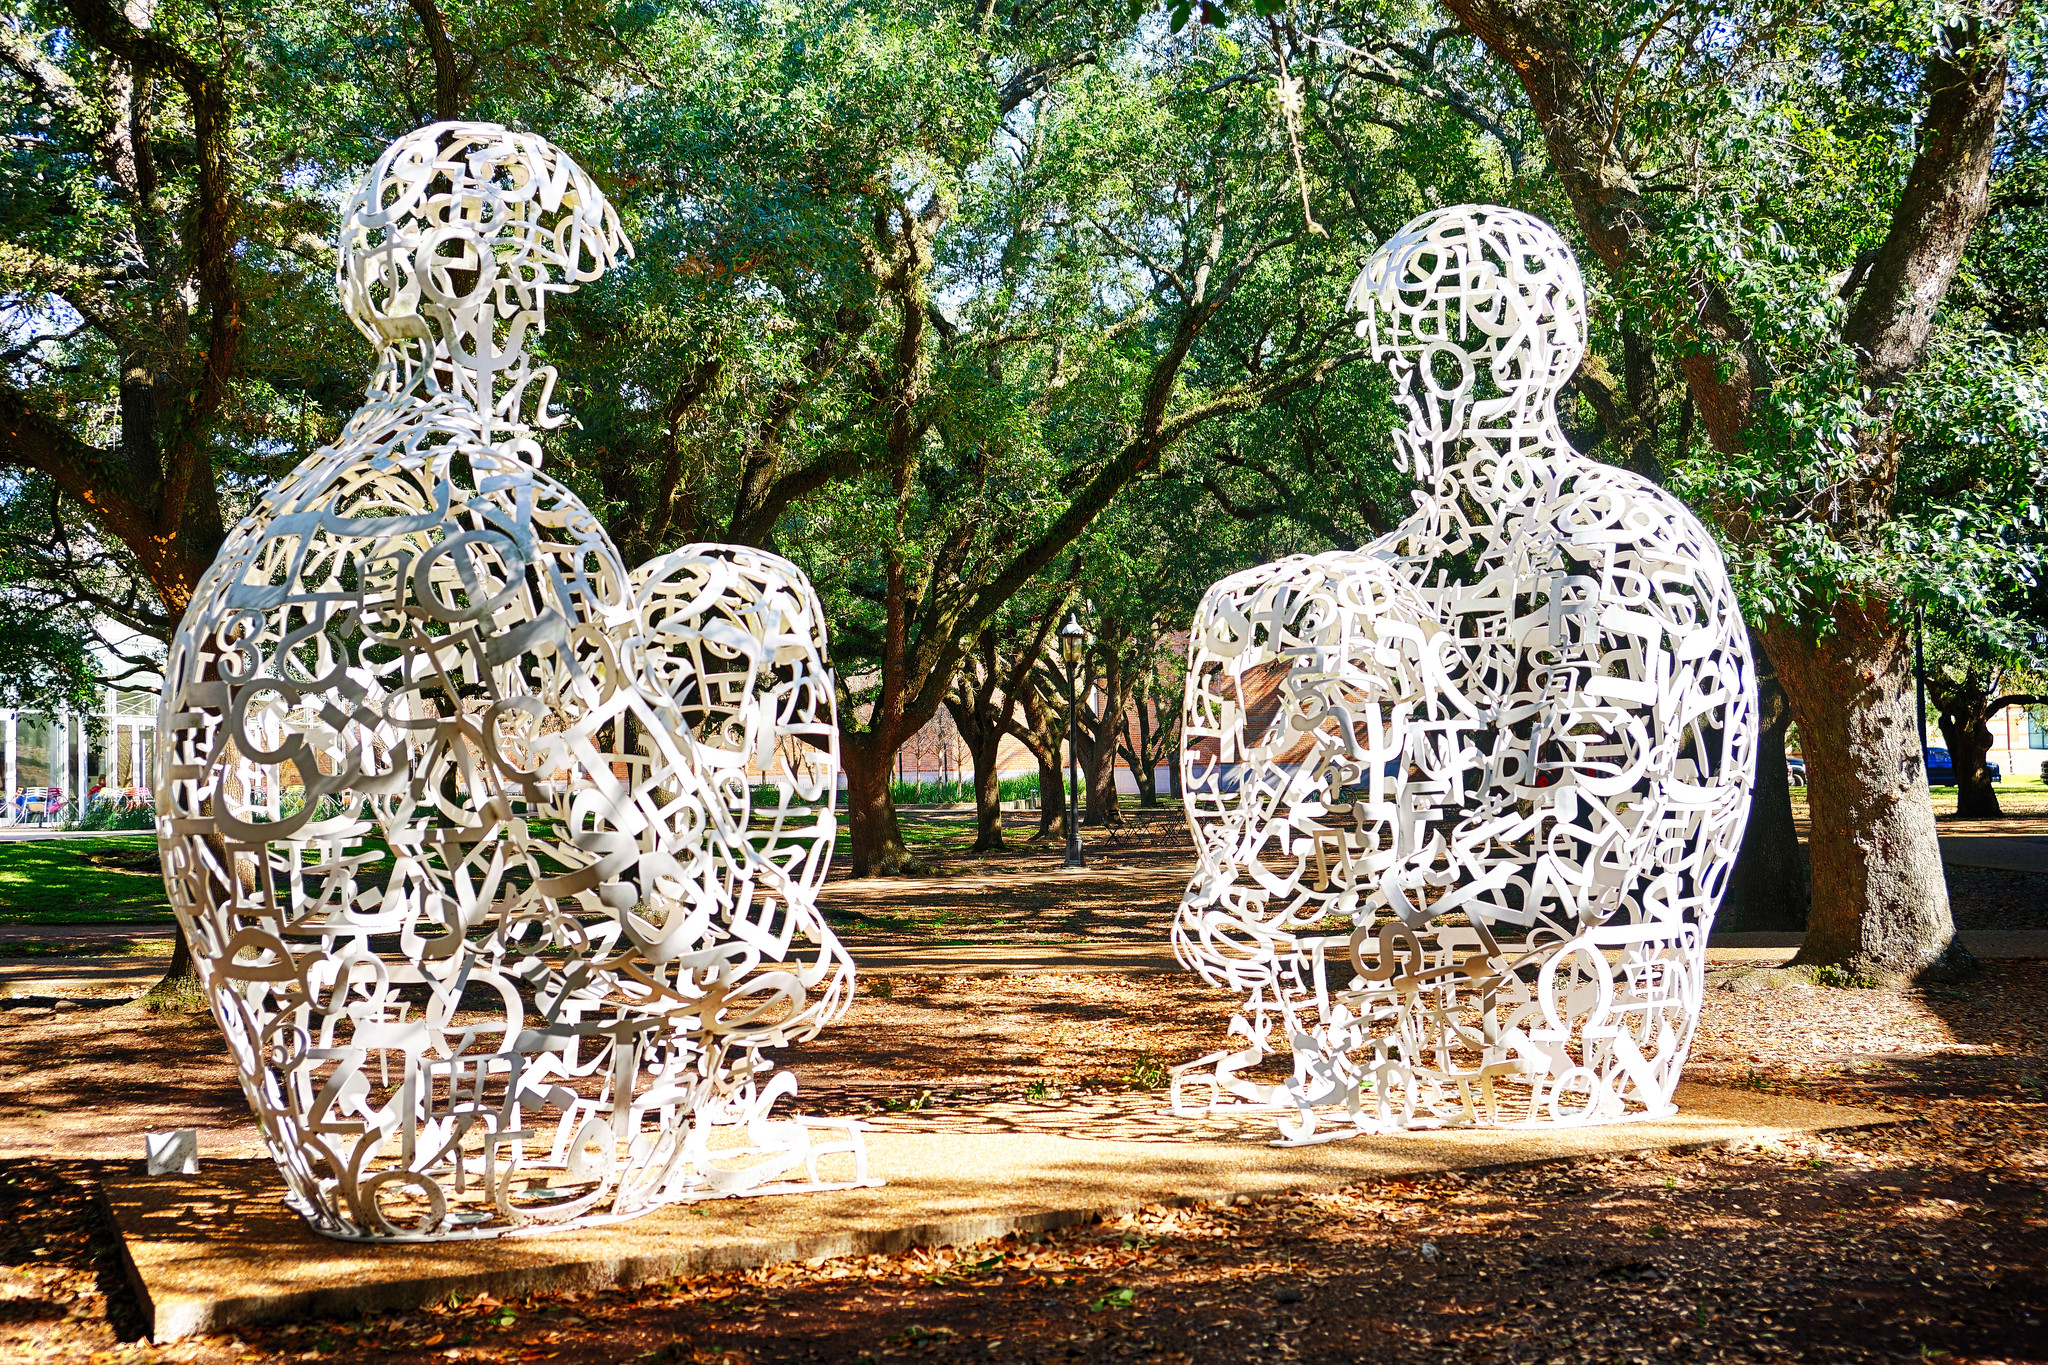 Jaume Plensa's 'Mirror' sculpture - Rice University